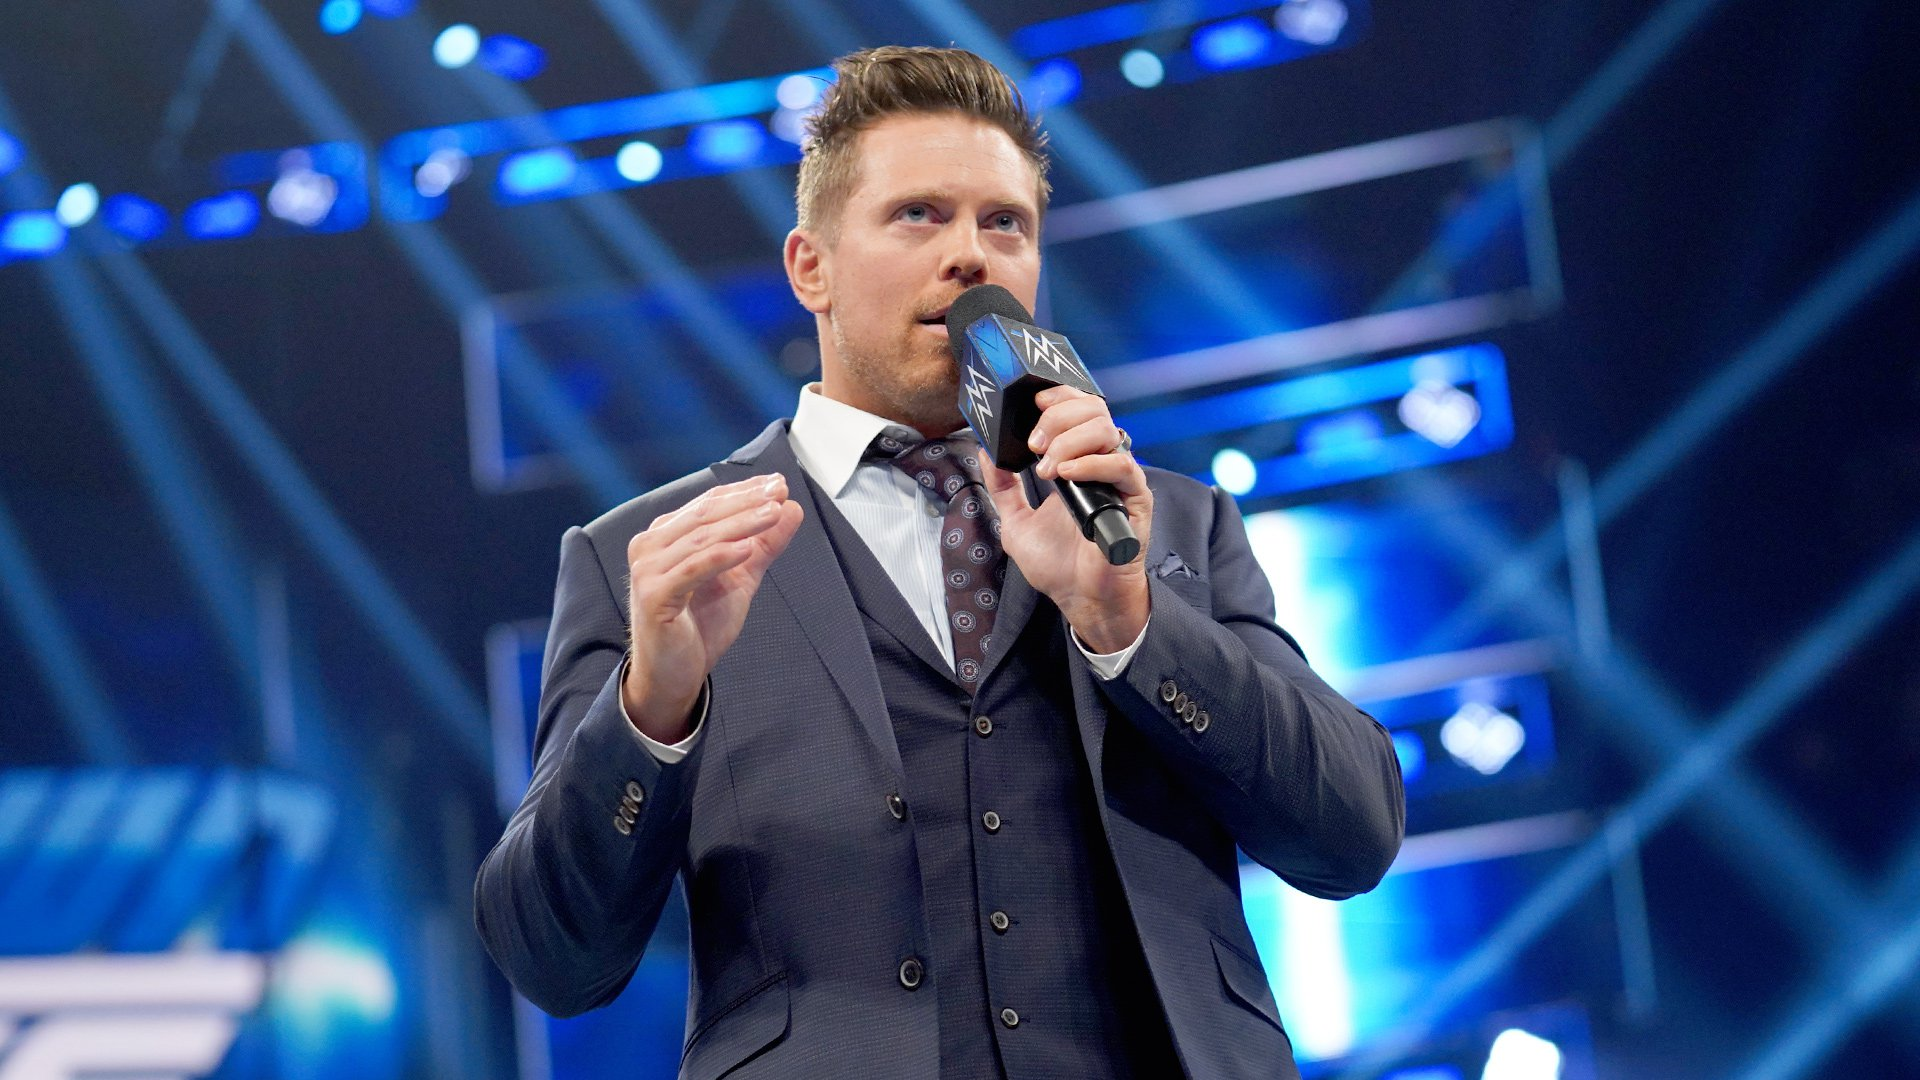 The Miz vs. Shane McMahon: WrestleMania 35 match preview